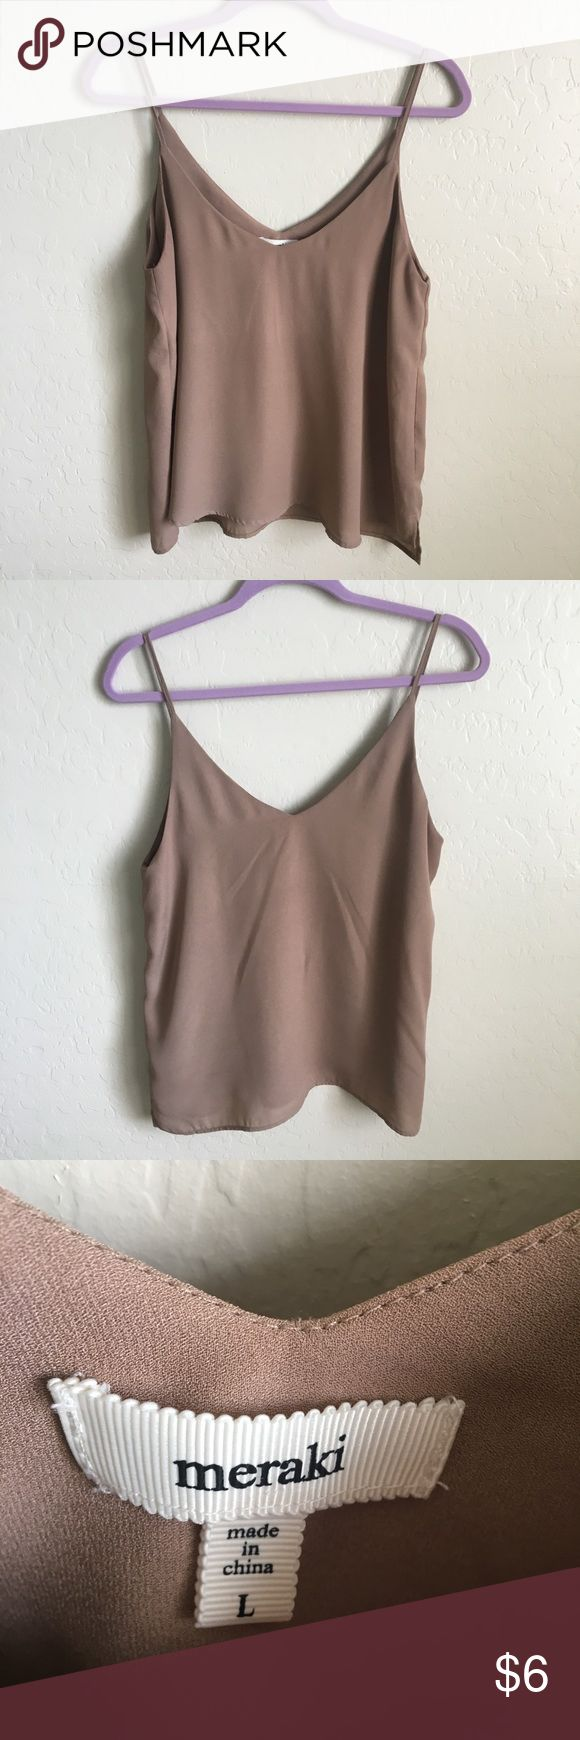 BROWN TAUPE TANK TOP CROP TOP Very sexy, tank top that bares the midriff a little longer than a crop top but not long enough for regular tank top! The color is super in trend! Pair with a pair of black skinny jeans and strapy heels! Price is firm unless bundles with multiple items! Department store brand! From Nordstrom! Nordstrom Tops Tank Tops